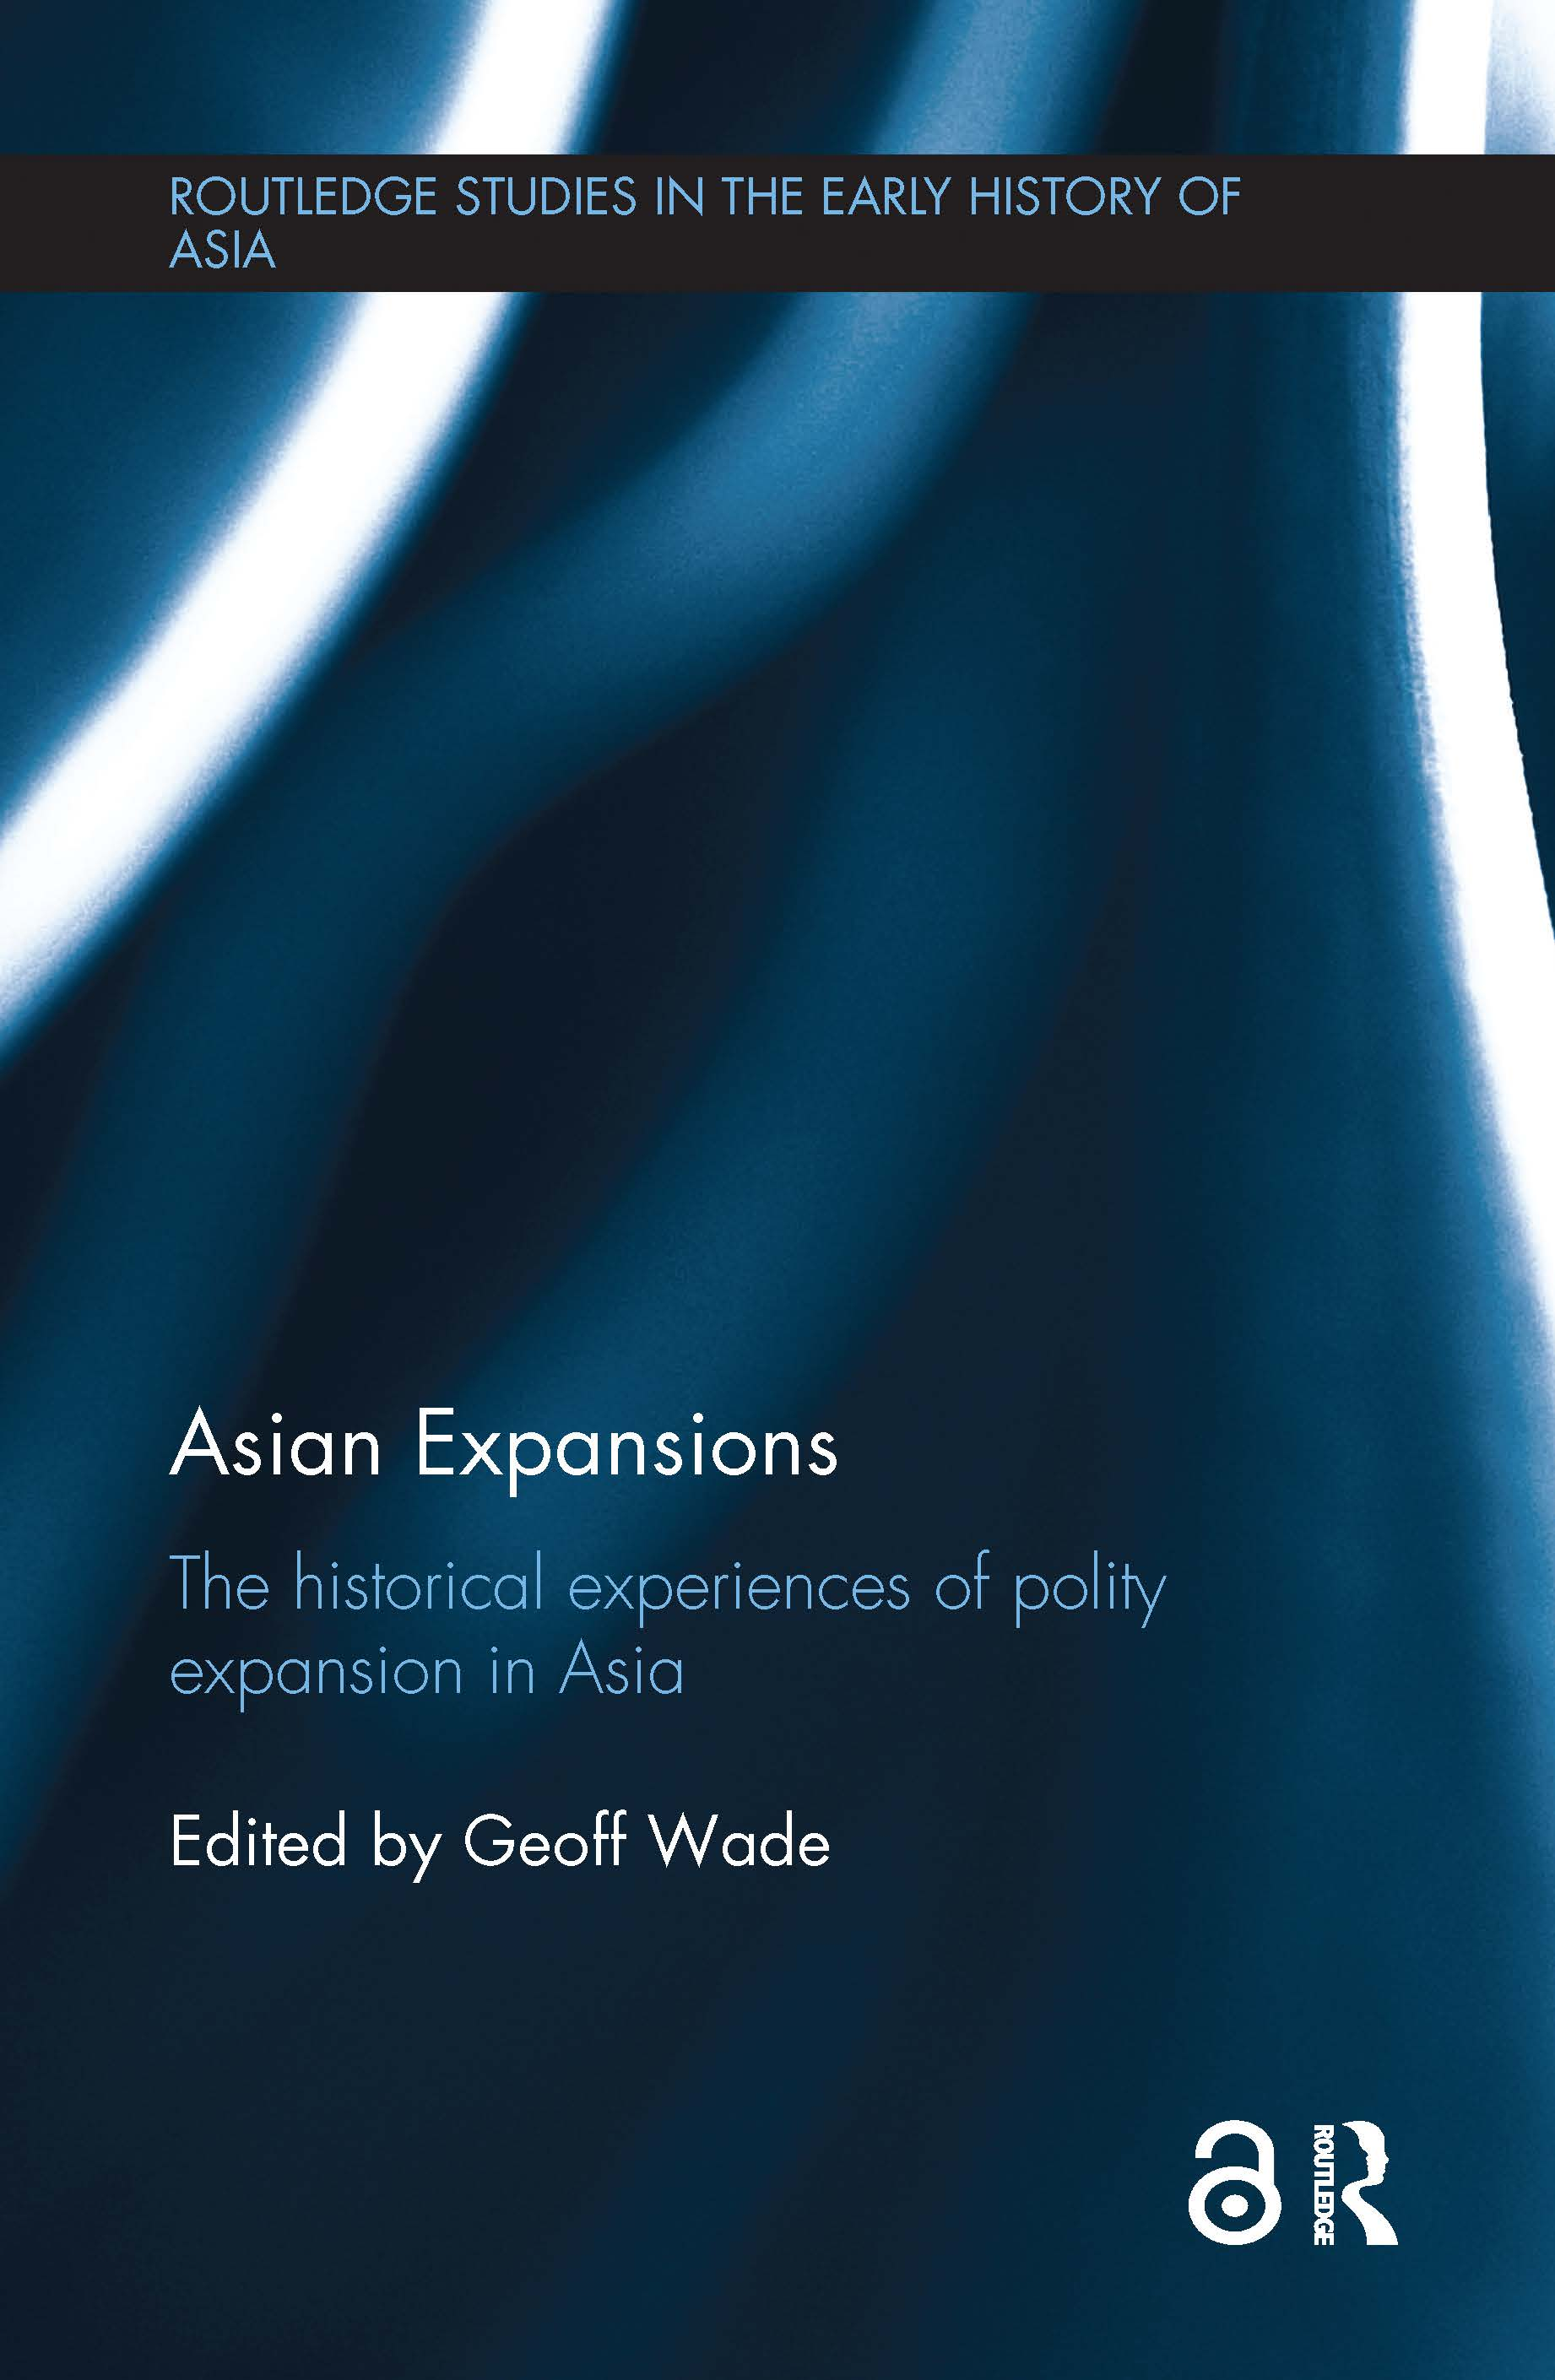 Asian Expansions: The Historical Experiences of Polity Expansion in Asia book cover